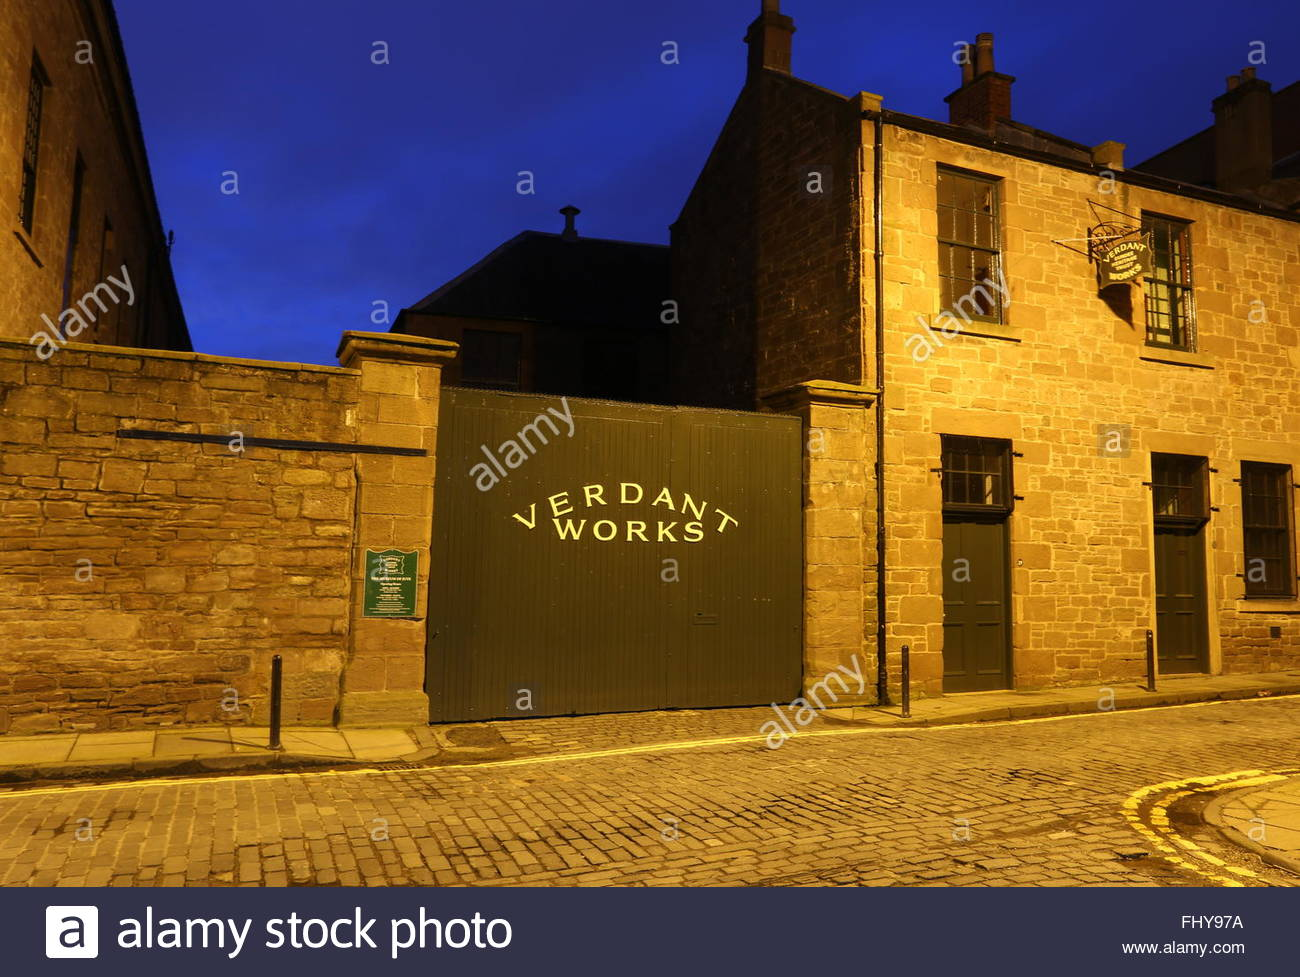 Exterior of Verdant Works Jute Mill Museum at night Dundee Scotland  December 2015 - Stock Image